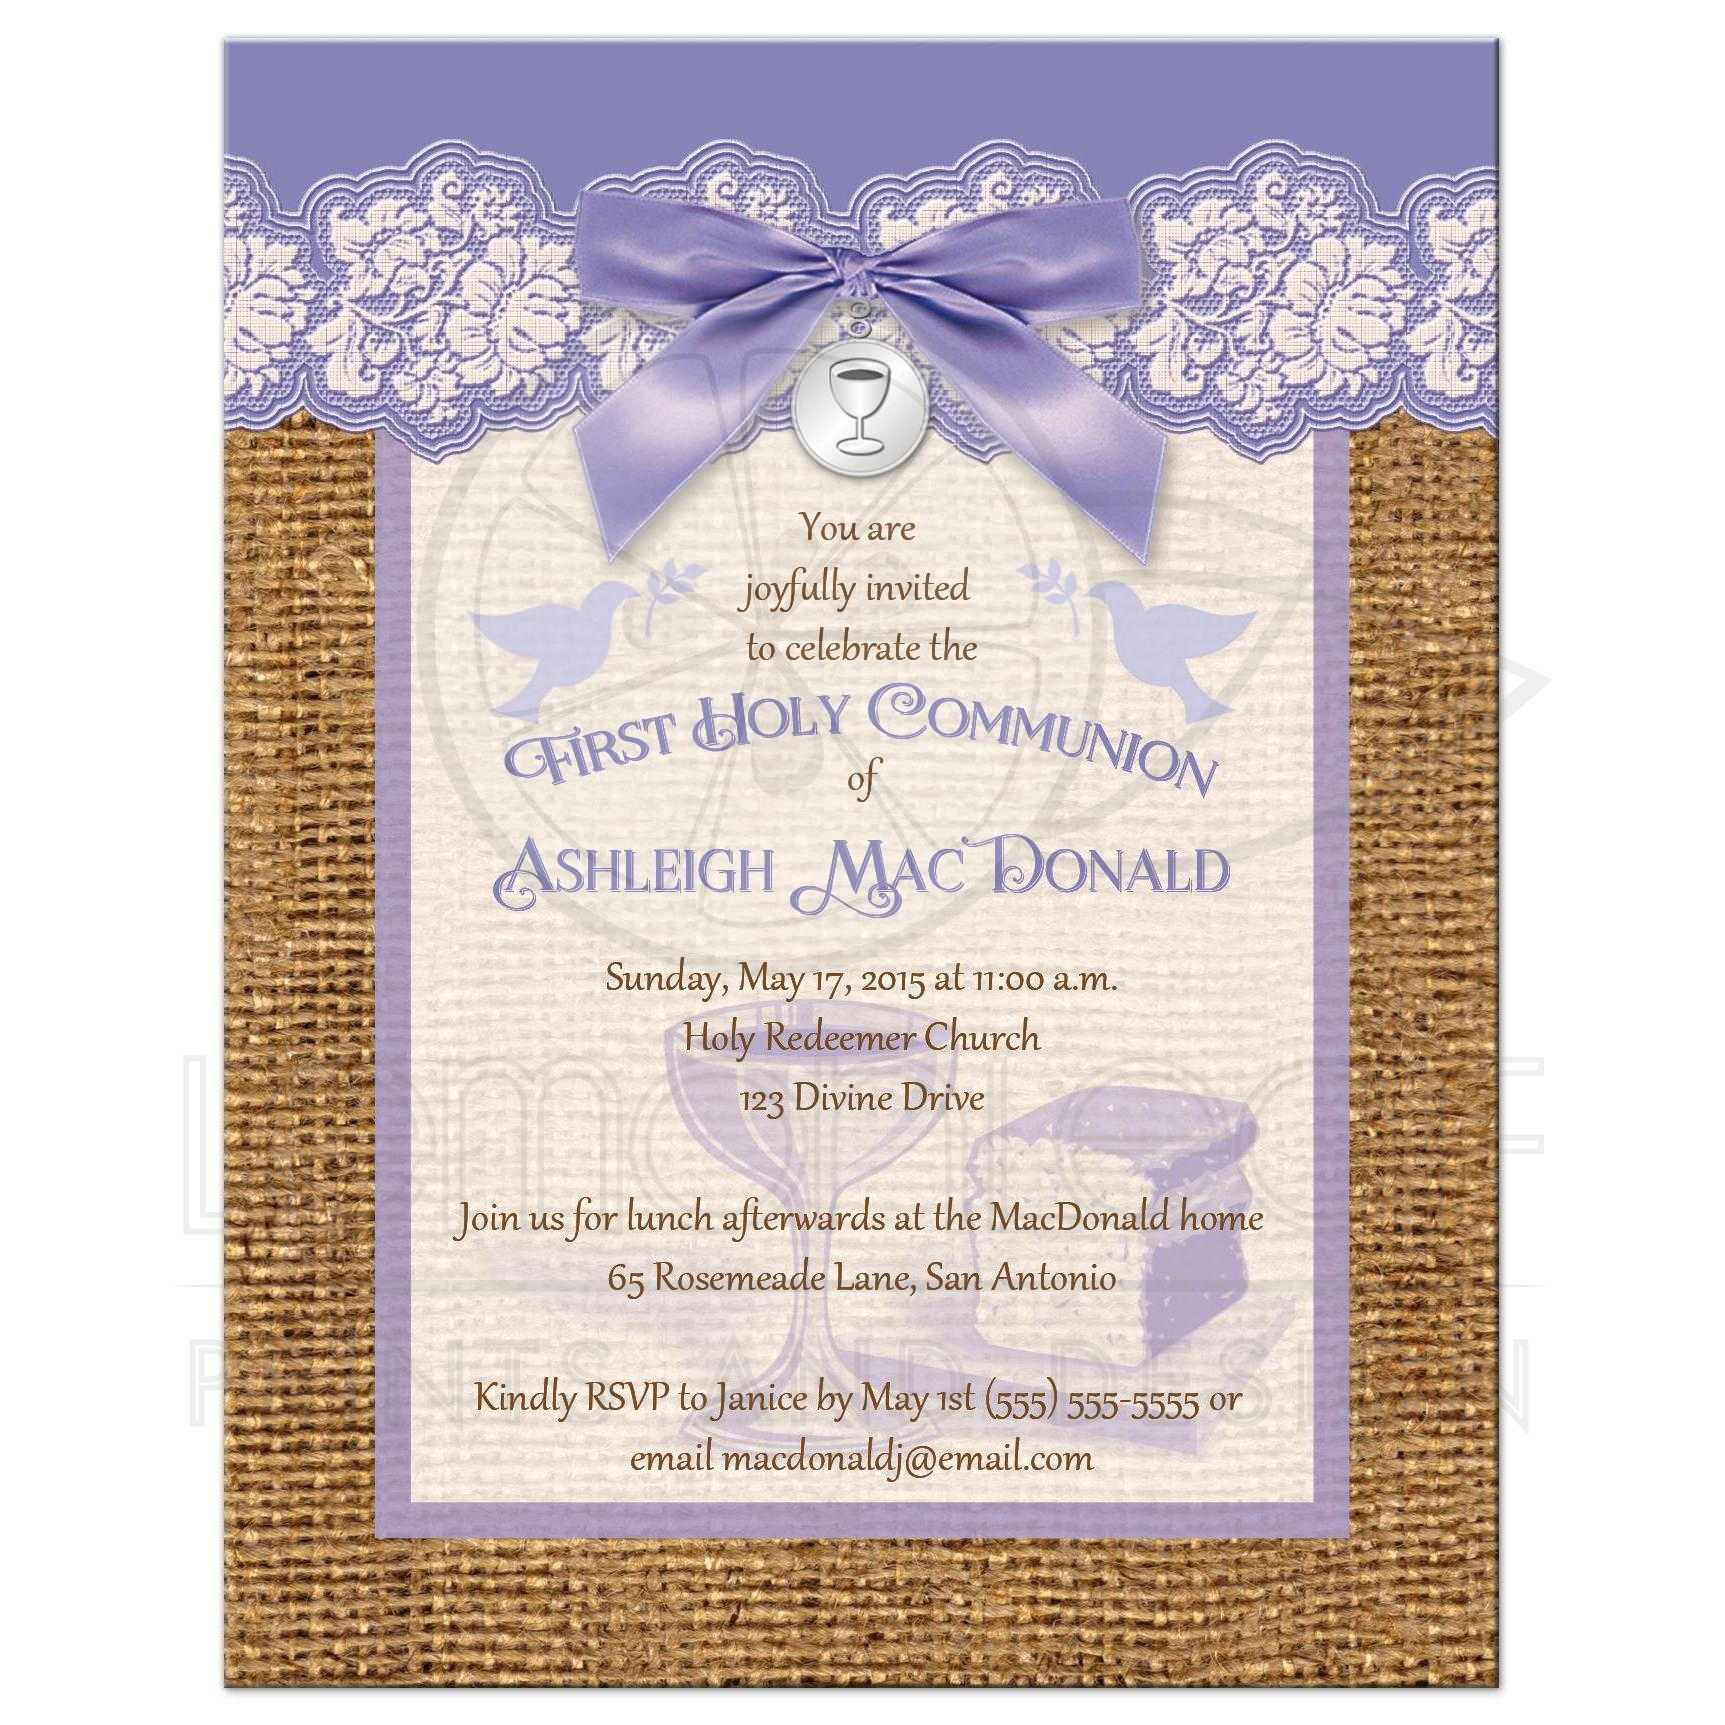 First Holy Communion Invitation Purple And Ivory Lace Faux Burlap